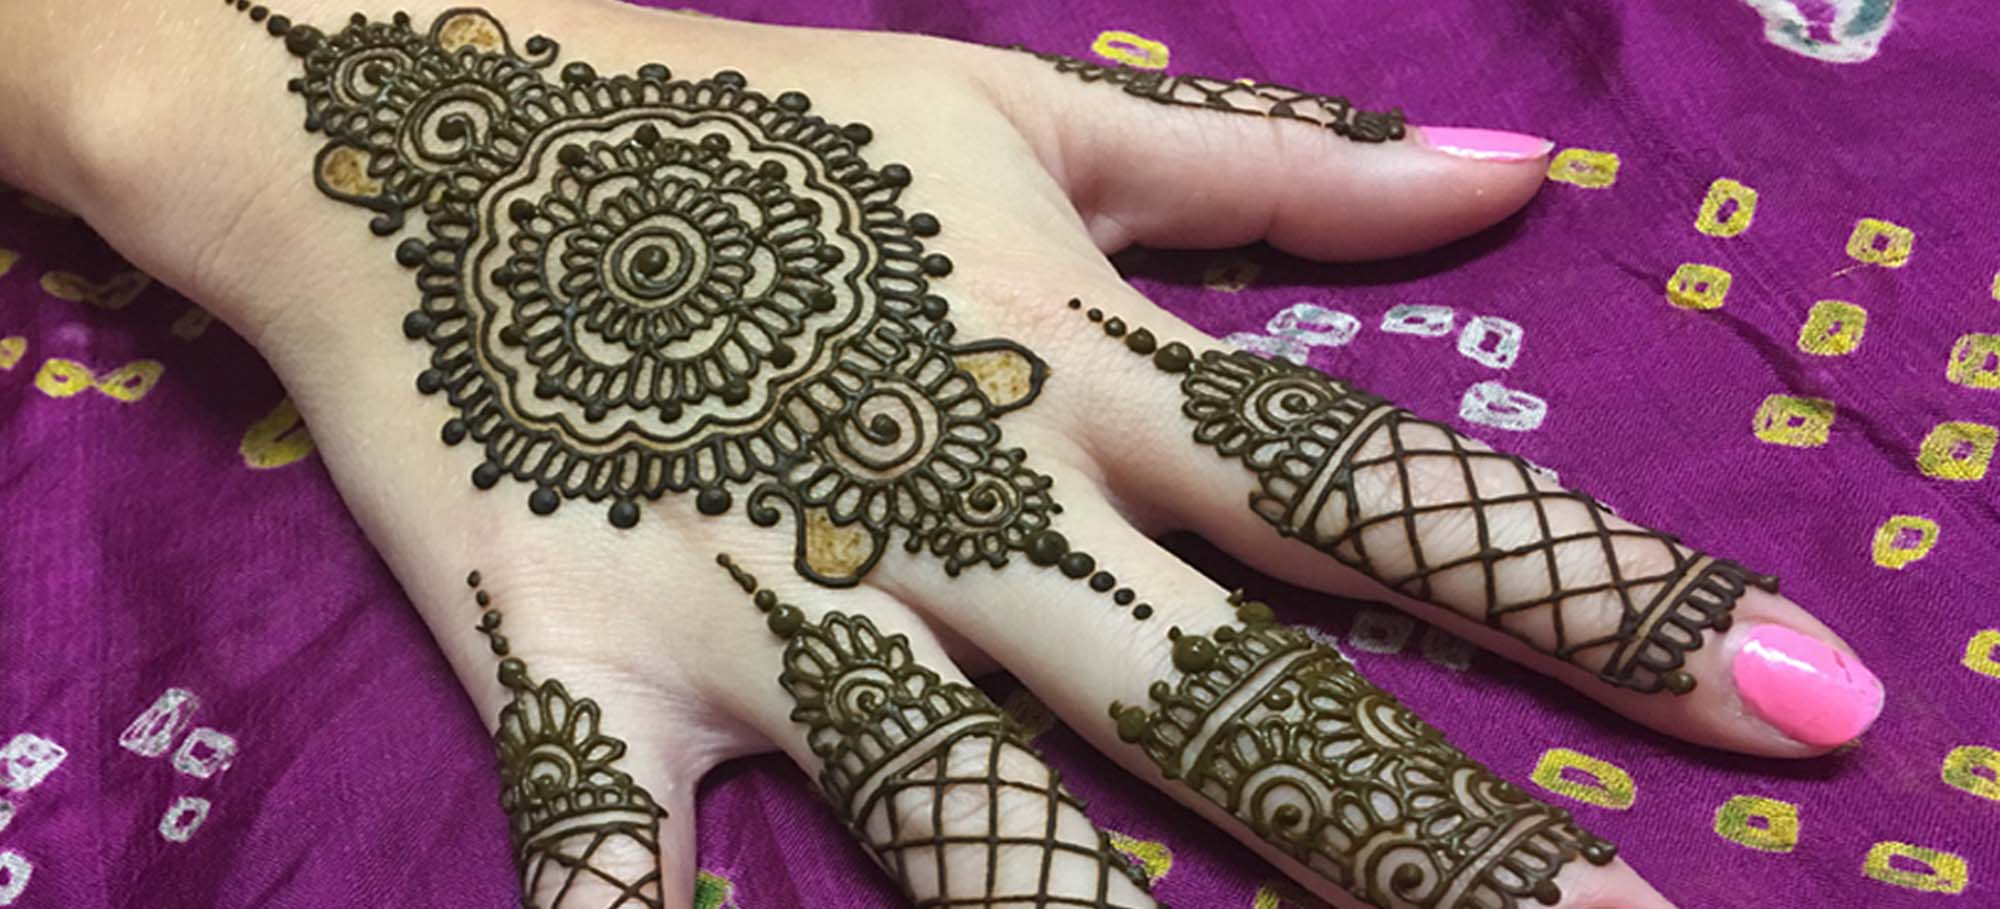 Professional Henna Tattoo Artists For Hire In Austin: Orlando Henna Tattoos And Mehndi Supplies